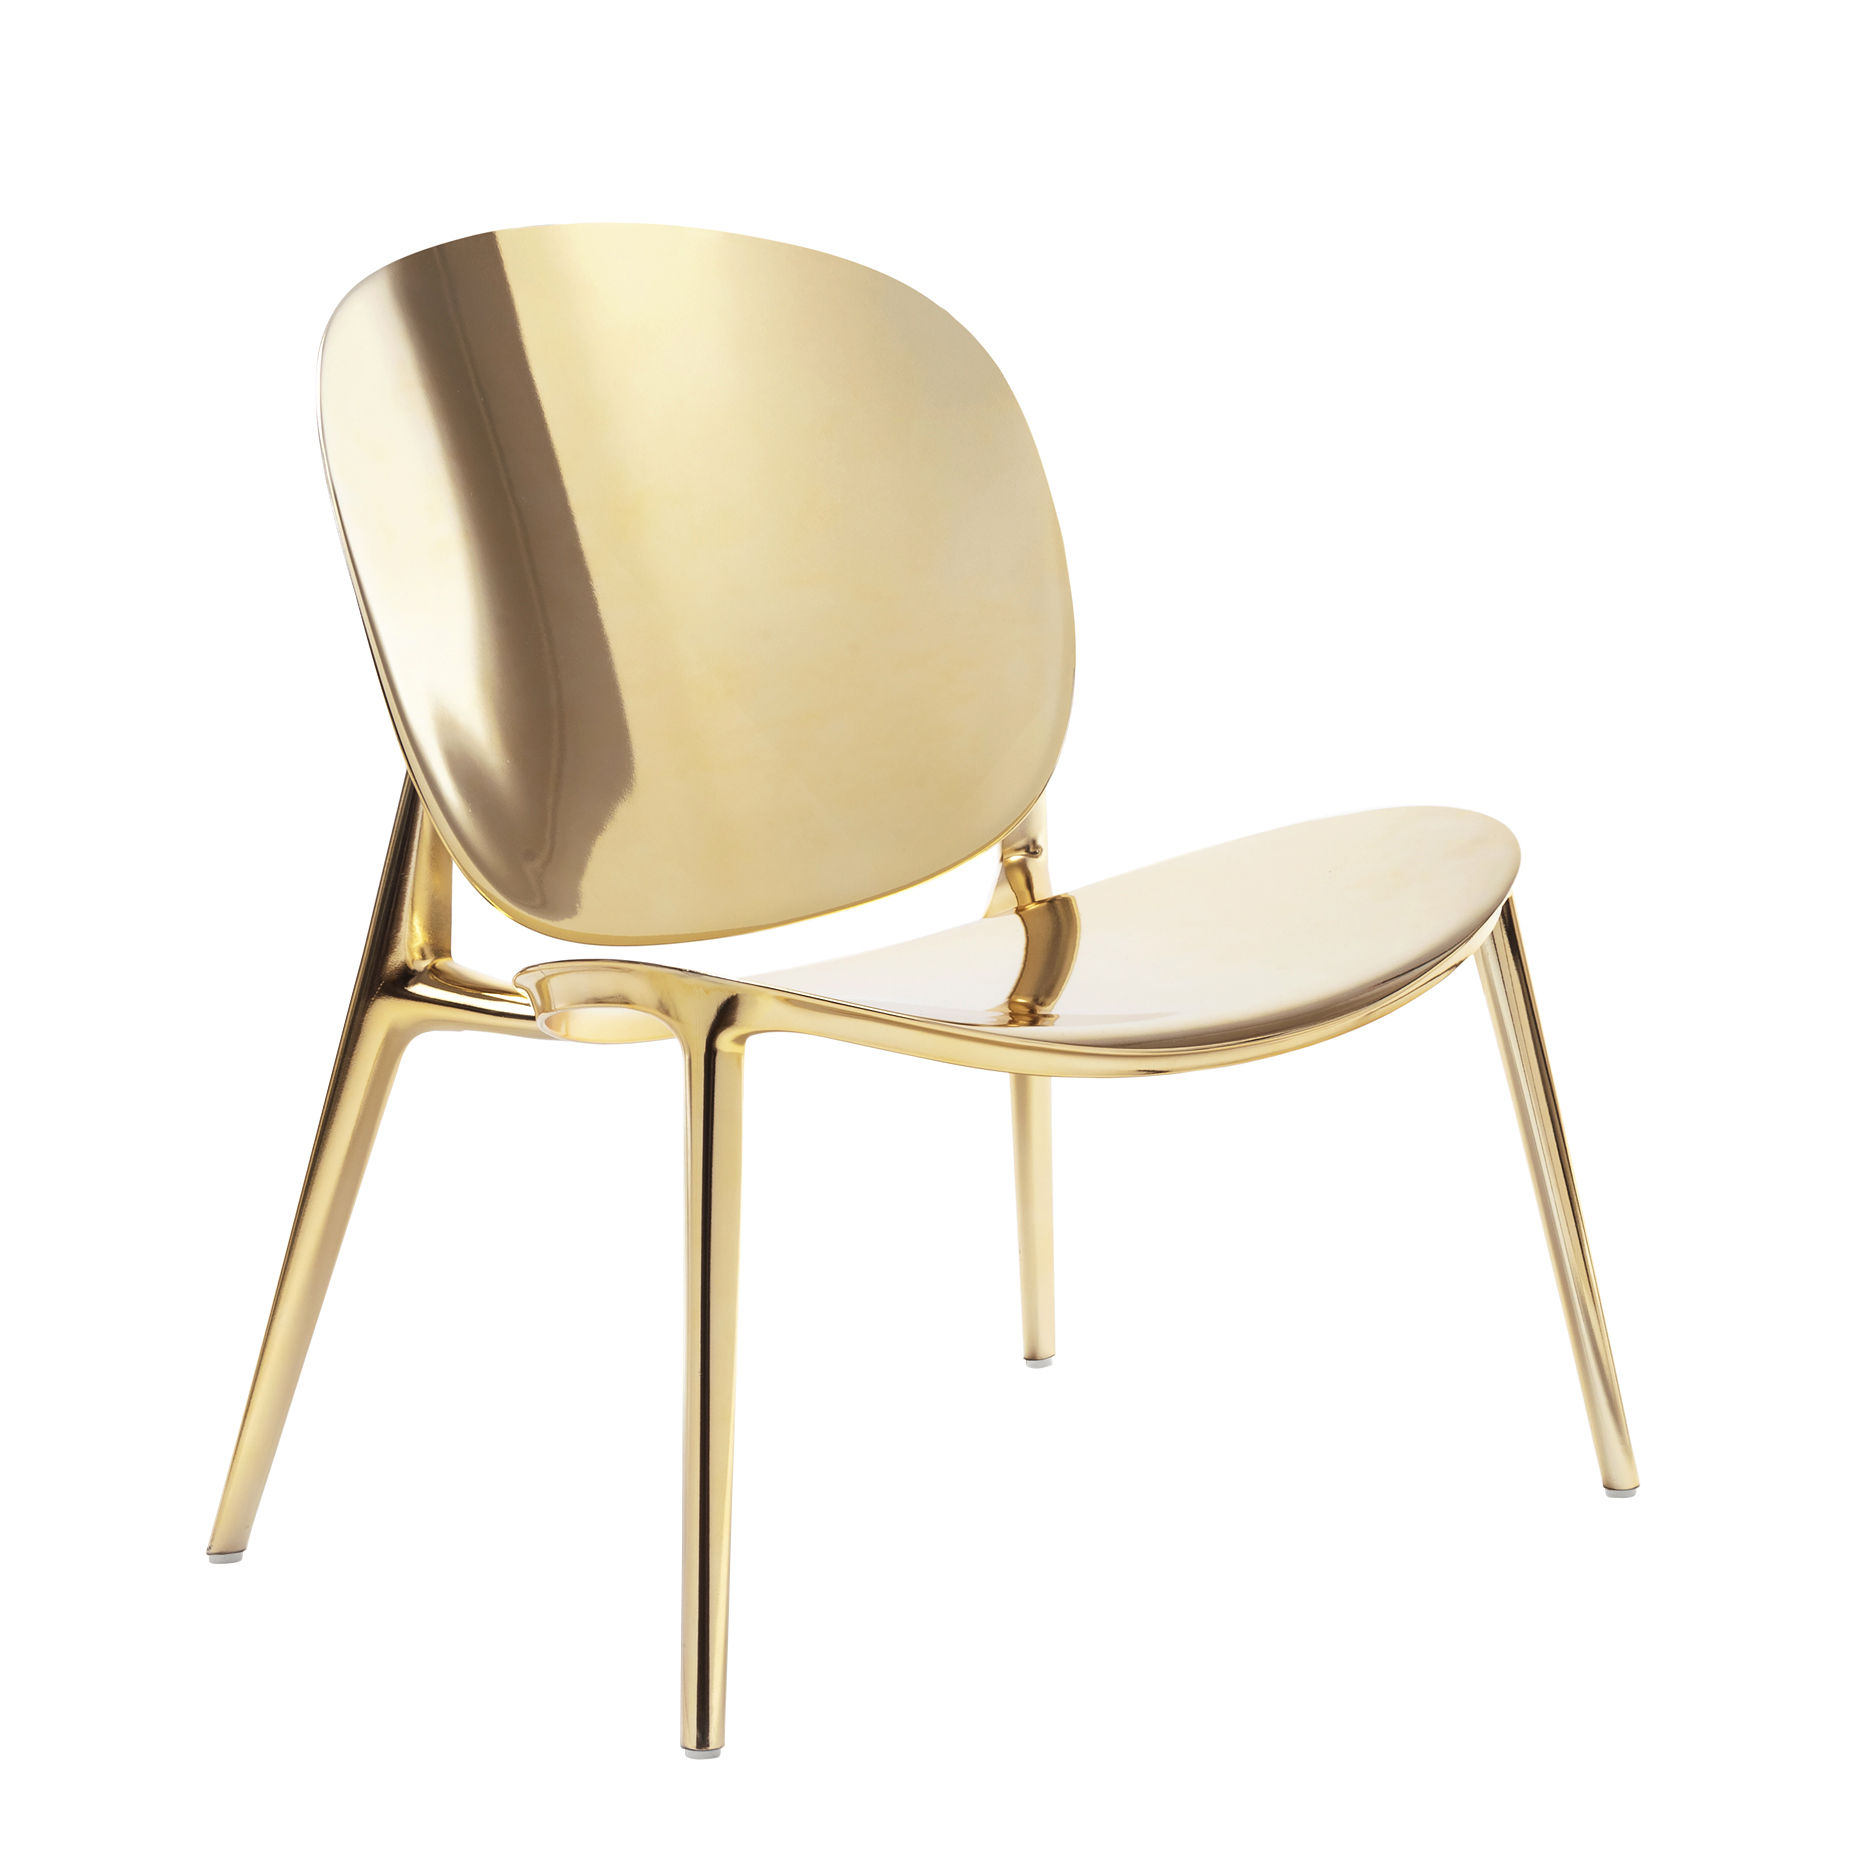 Furniture - Armchairs - Be Bop Low armchair - / Indoor by Kartell - Gold - Metallic-finish polypropylene